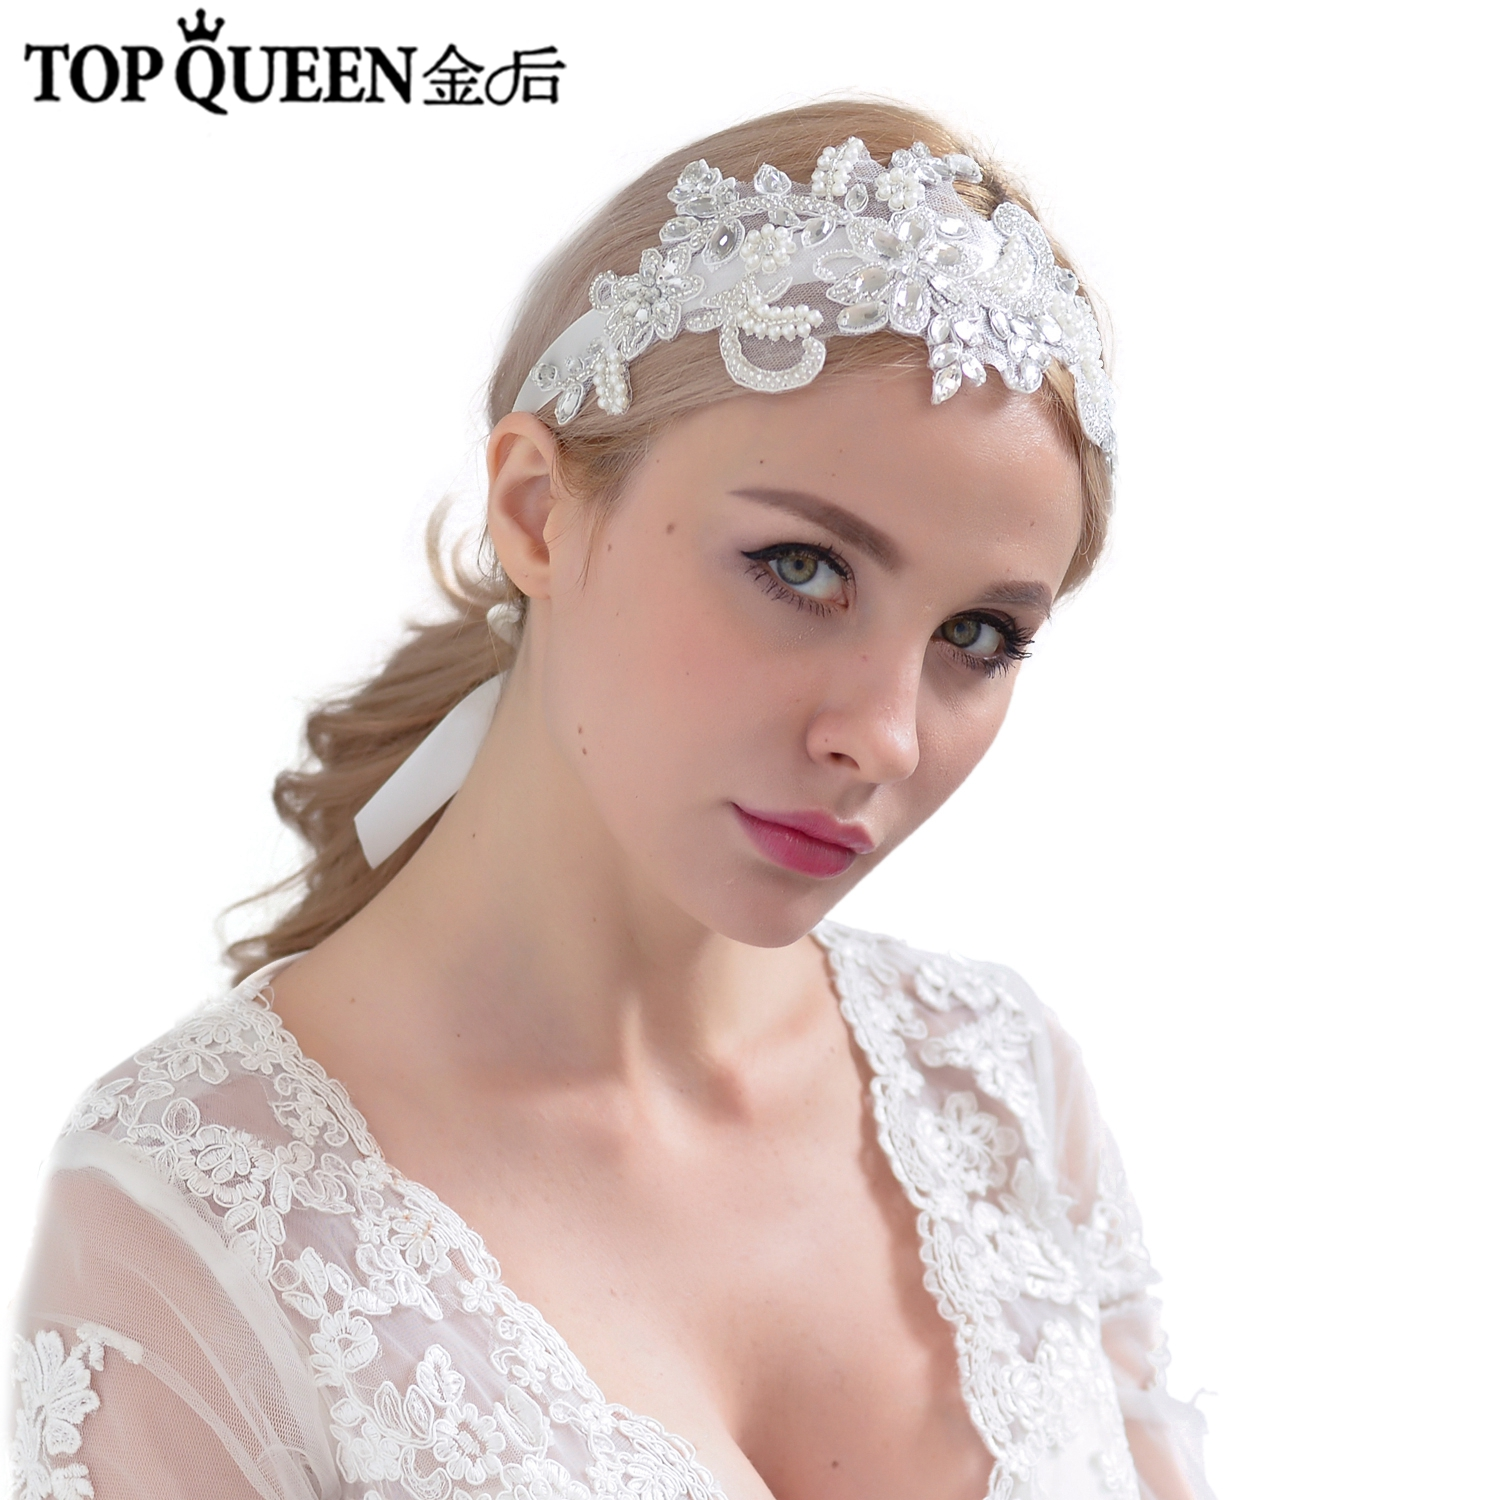 TOPQUEEN H74 Classical Bridal Hair Accessories For Women Rhinestones and Pearls Flower Hairband Bride Hair Jewelry Belt